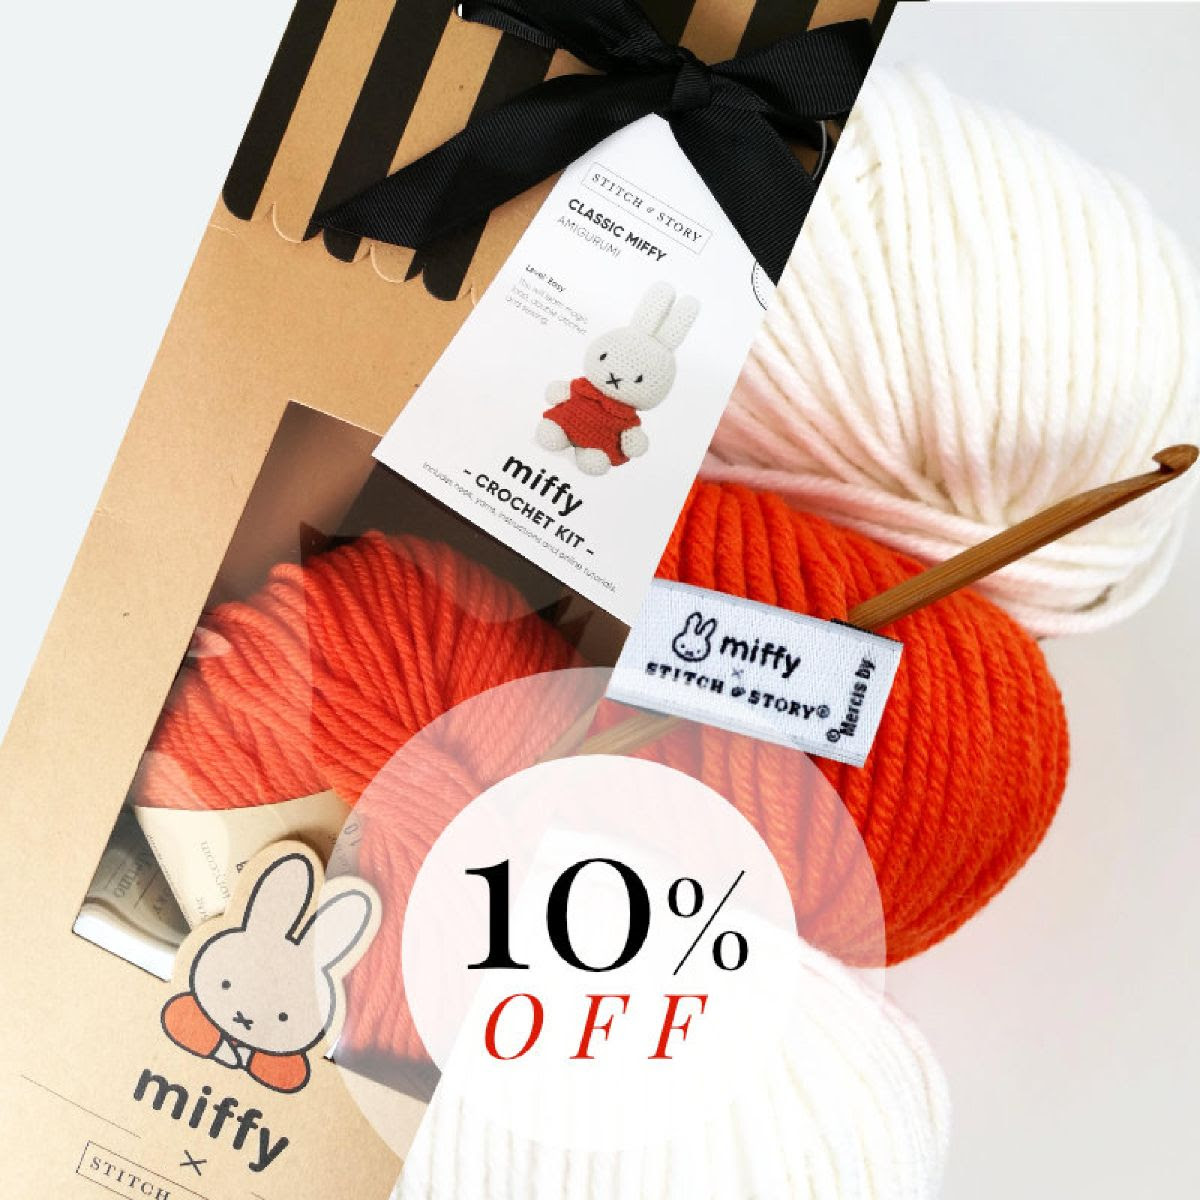 10% off all Miffy kits at Stitch & Story